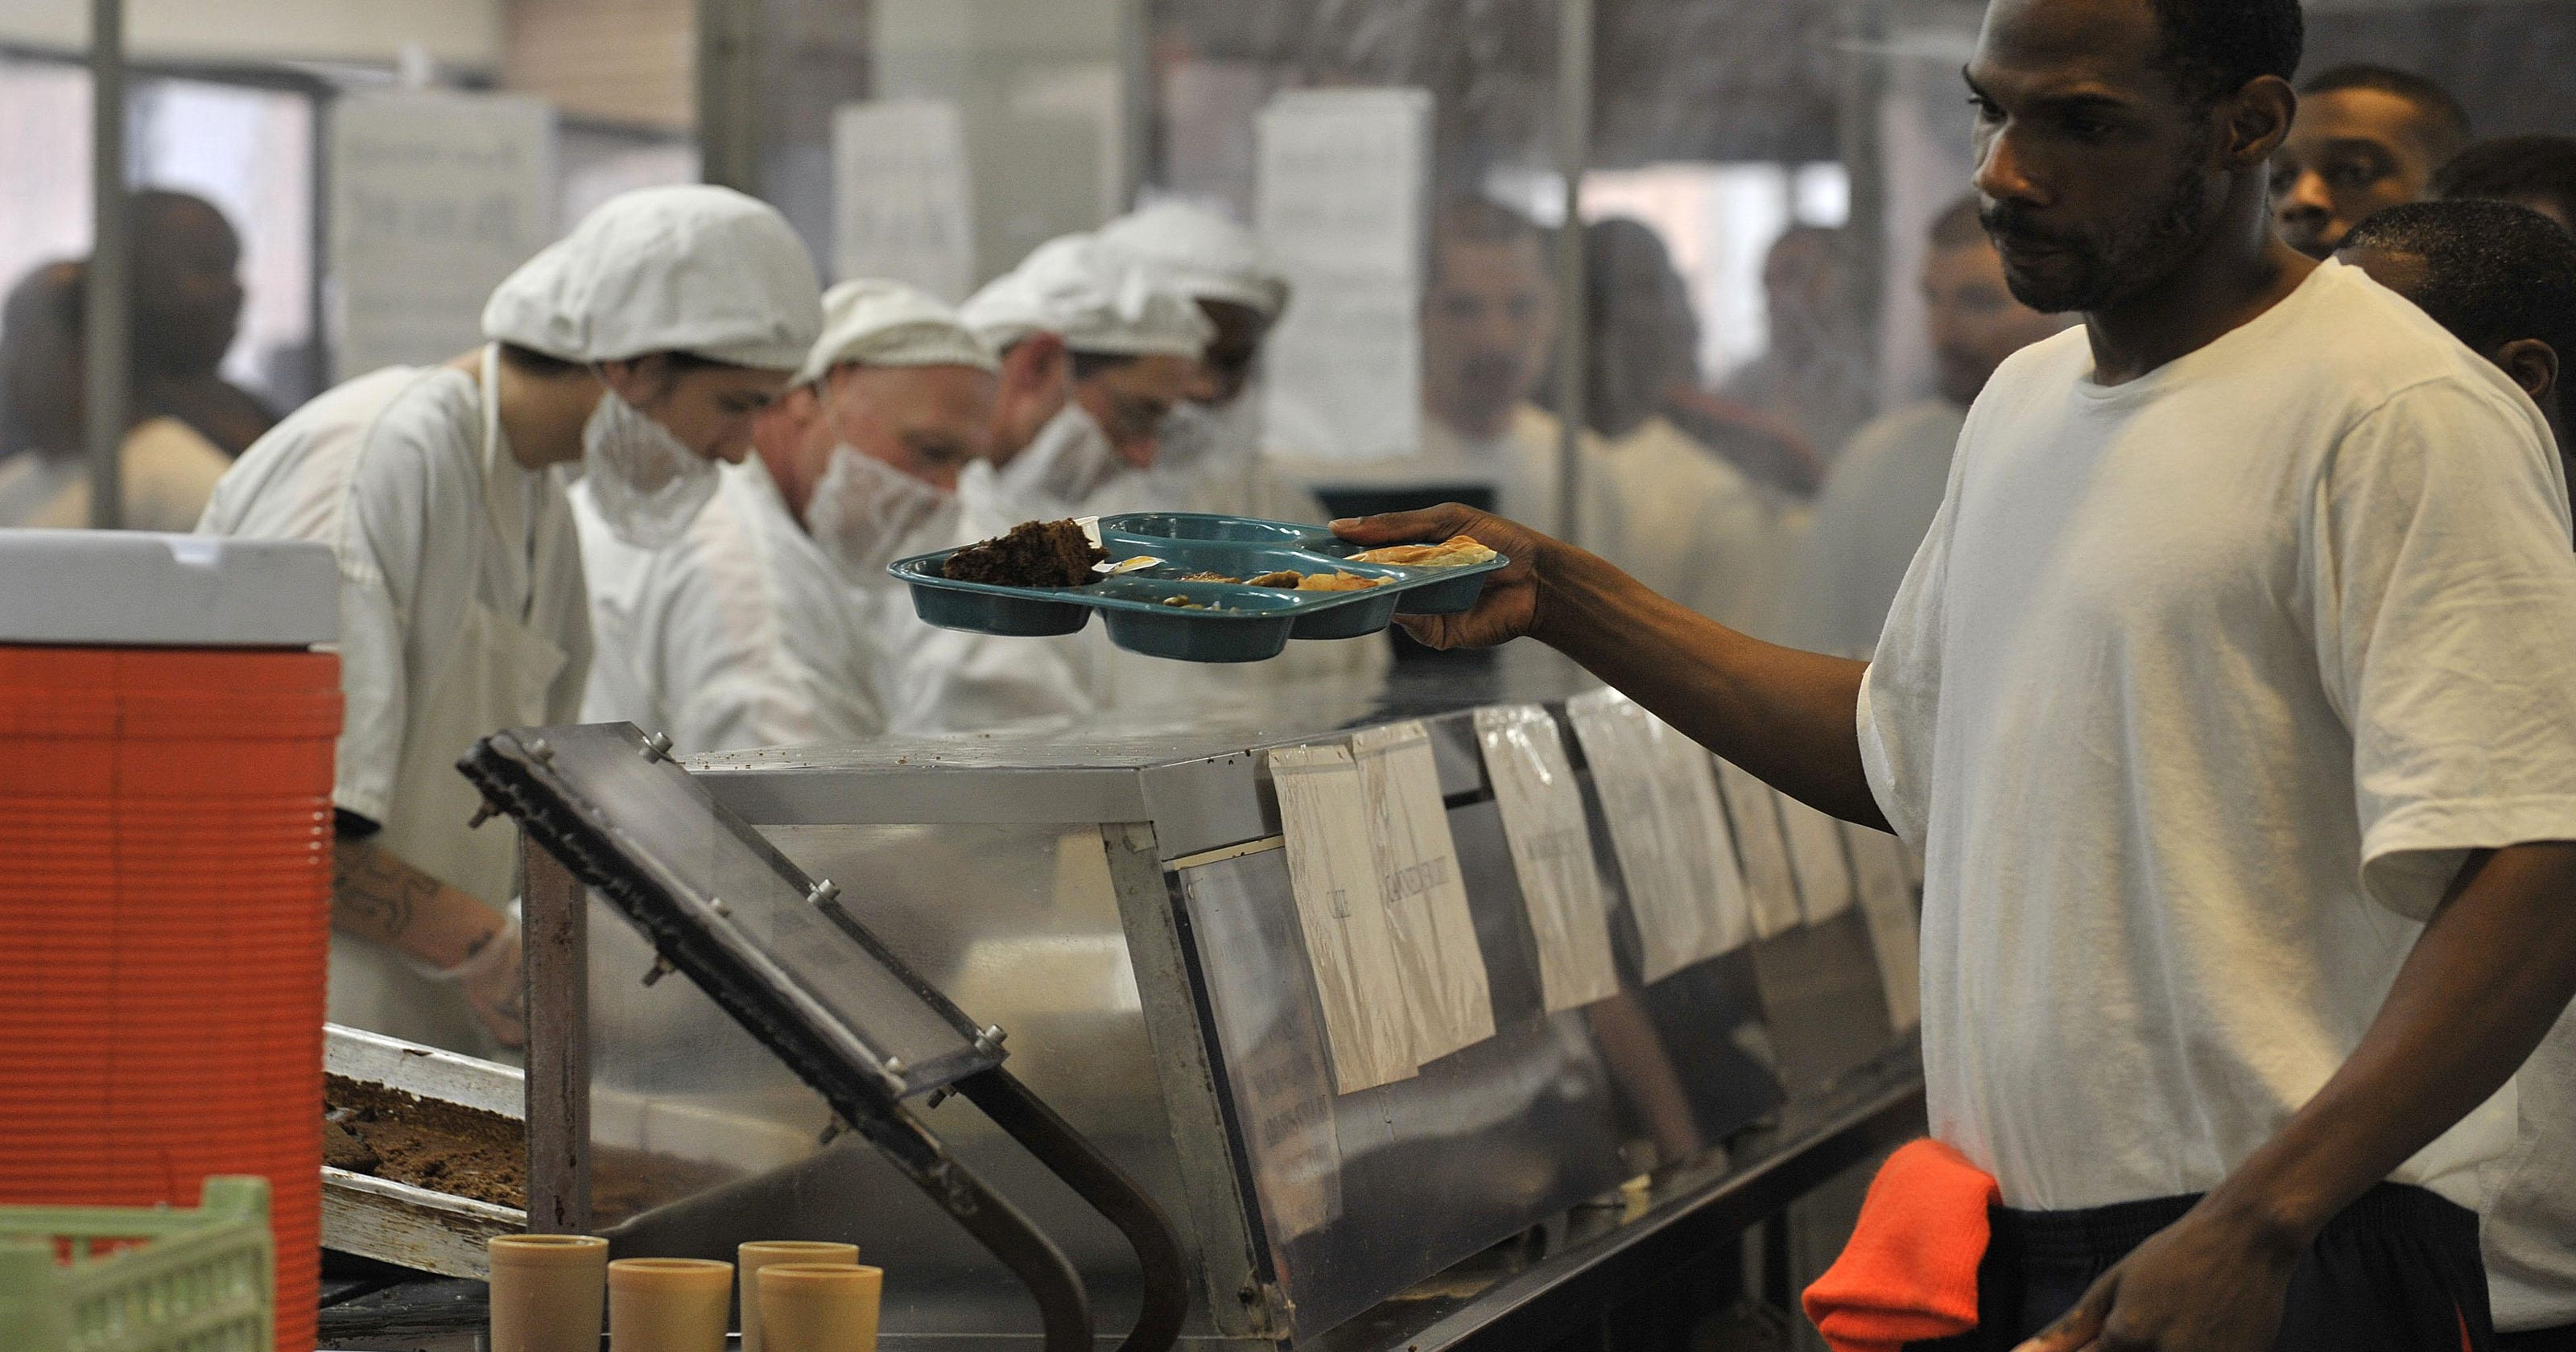 Snyder ends Aramark prison food contract